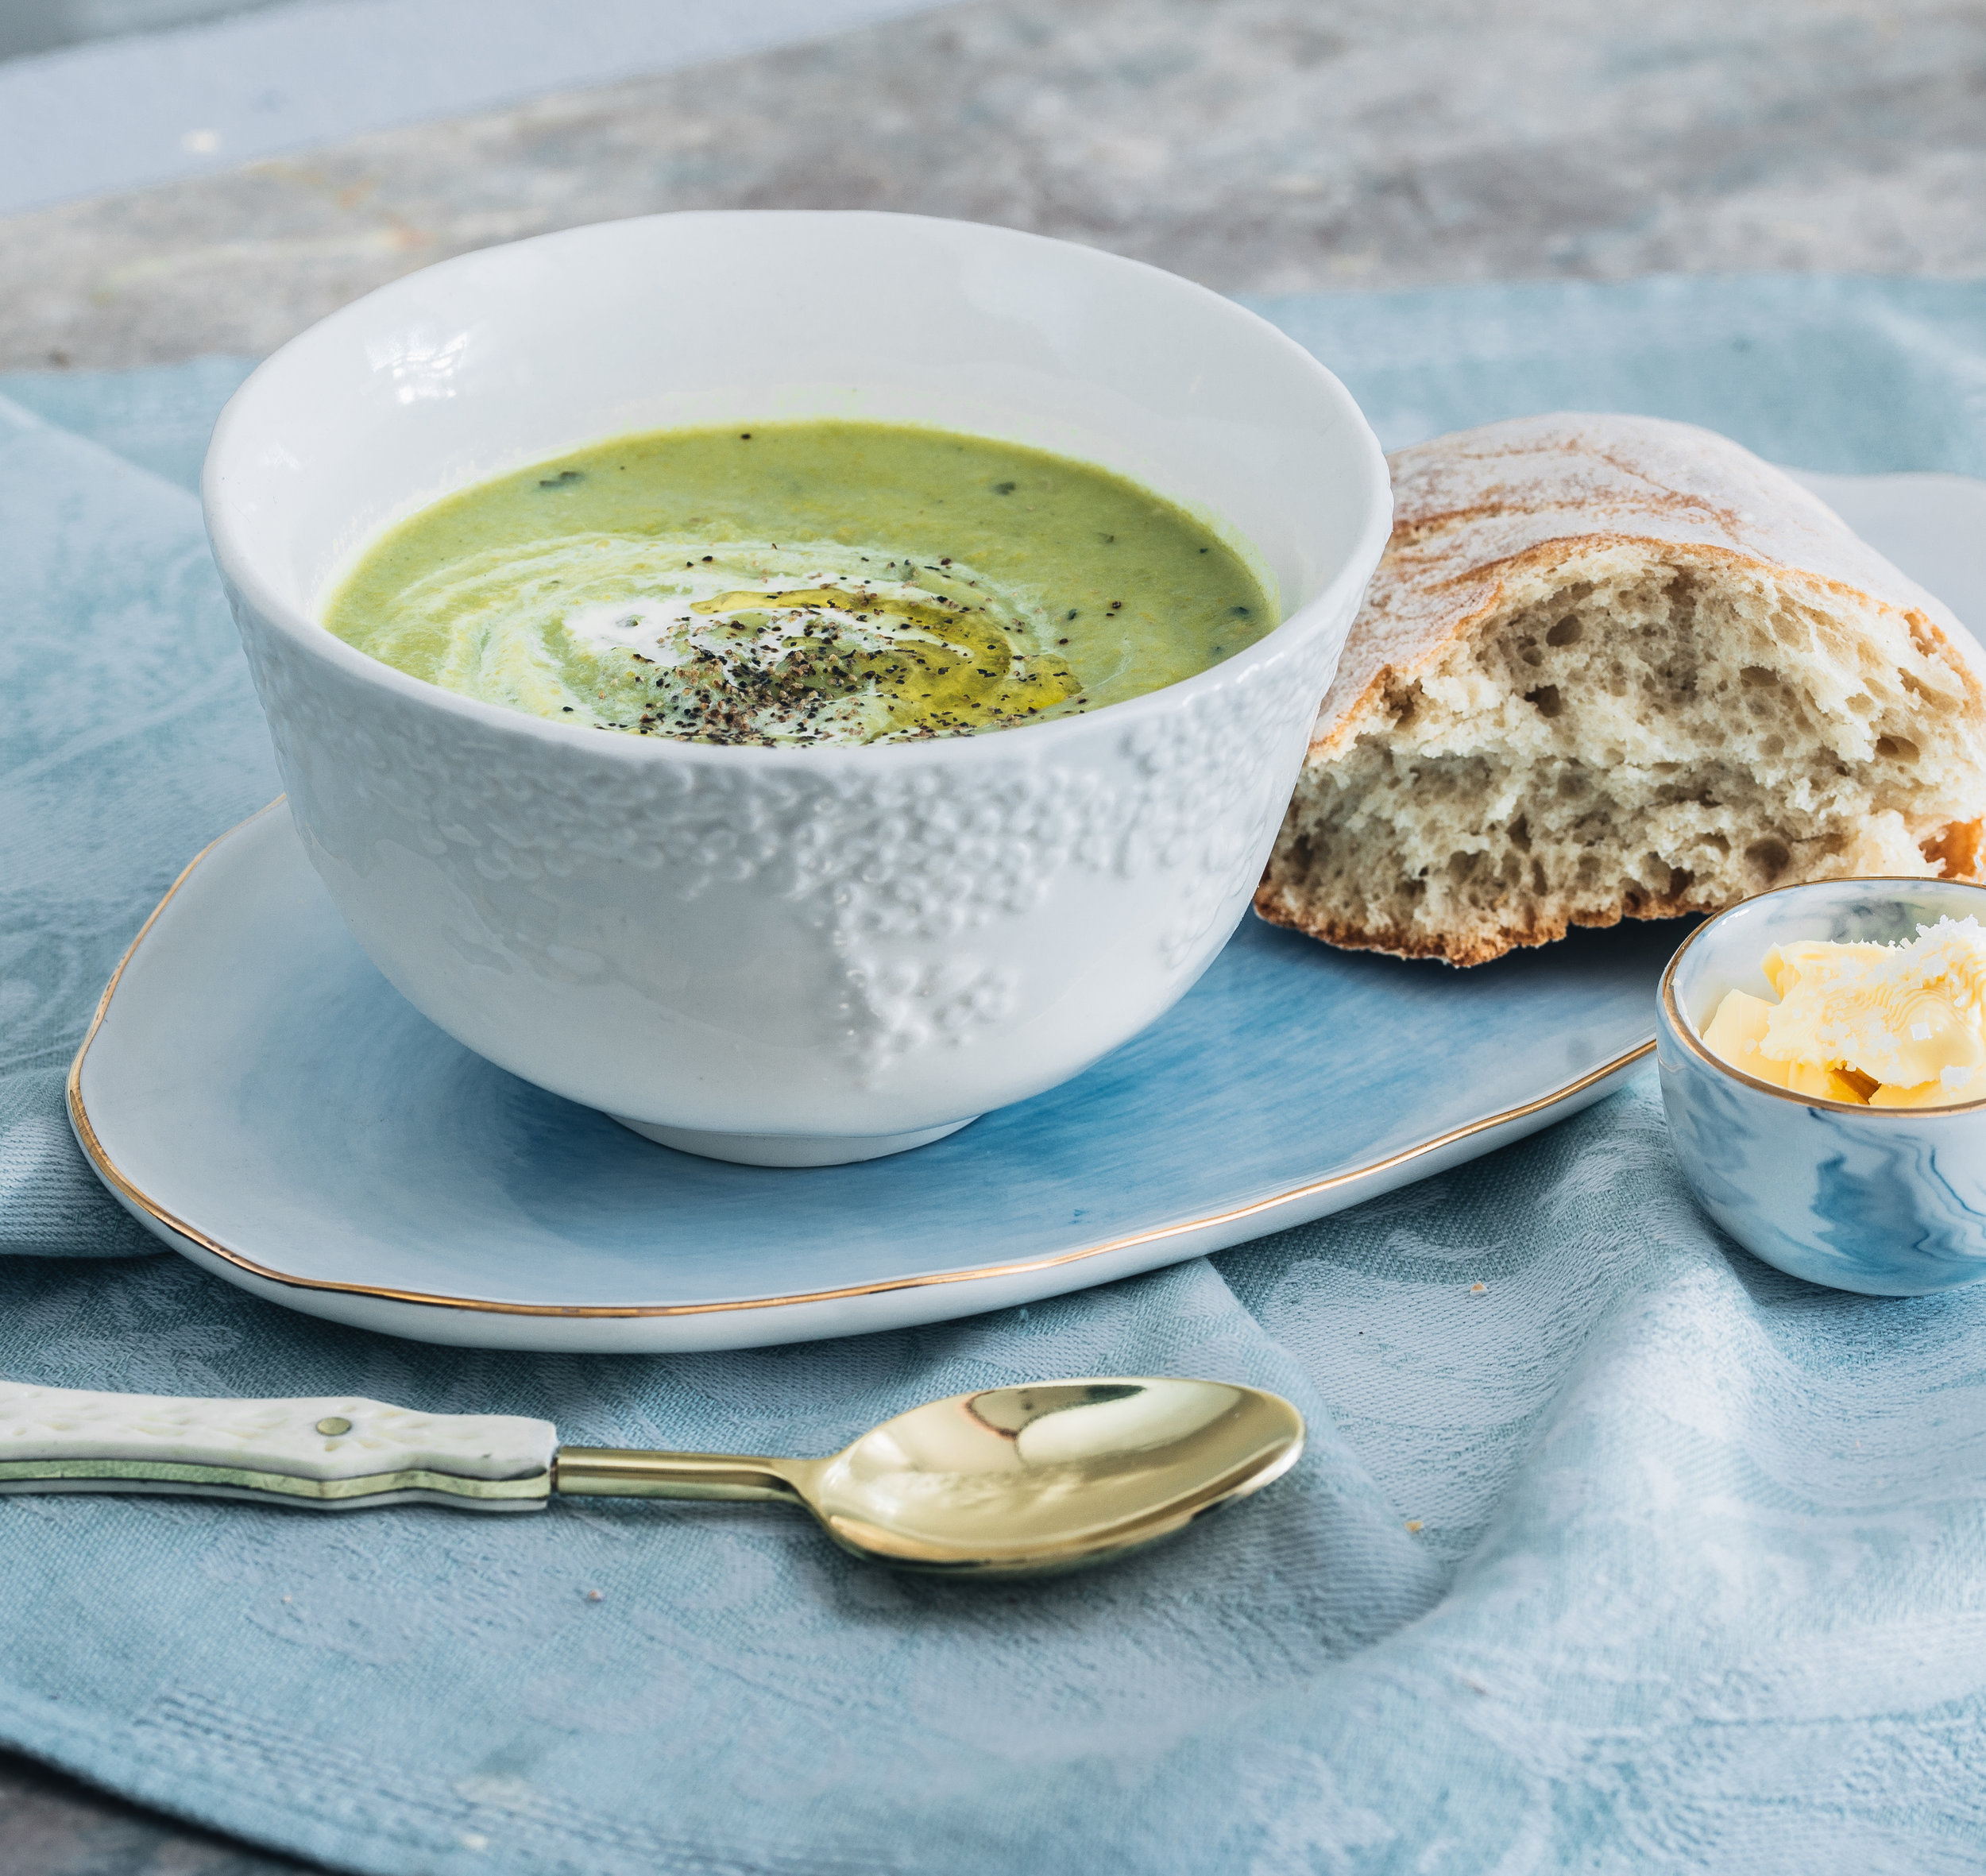 Pea and Ham Soup Anthropologie Food Styling.jpg